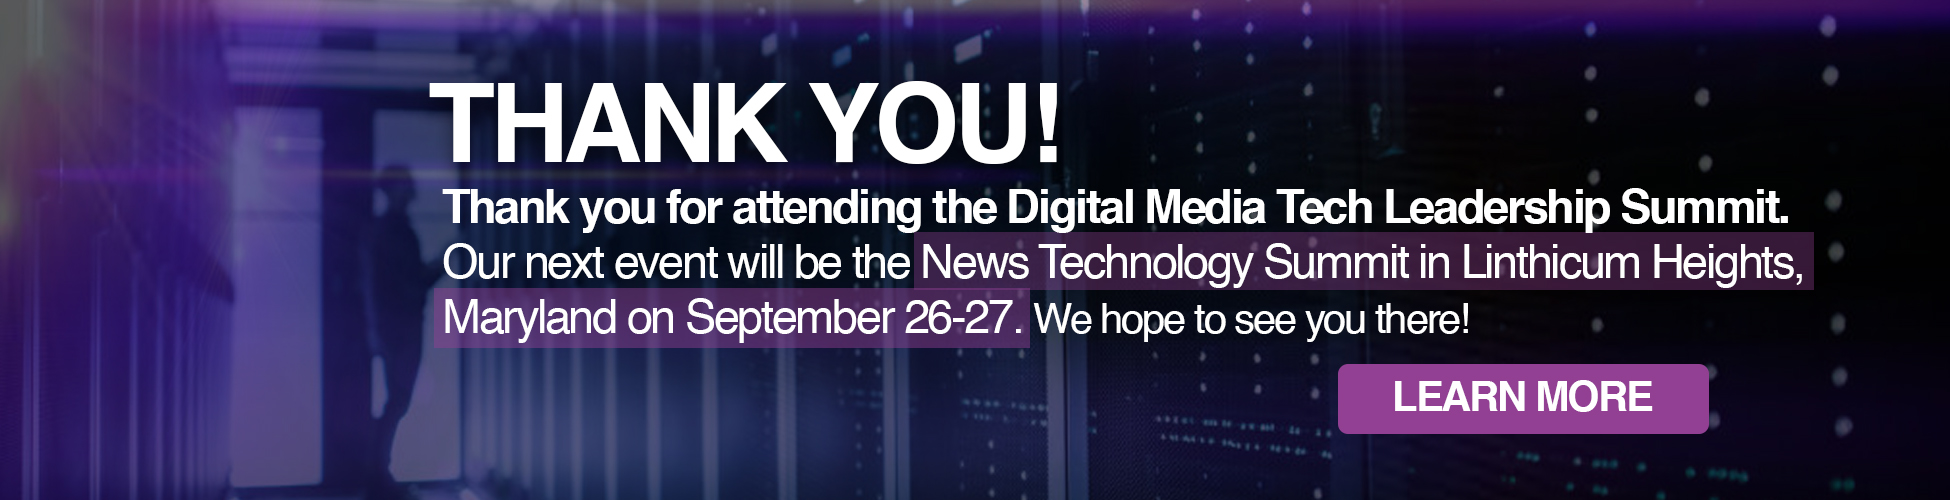 Thank You!, See You at News Technology Summit